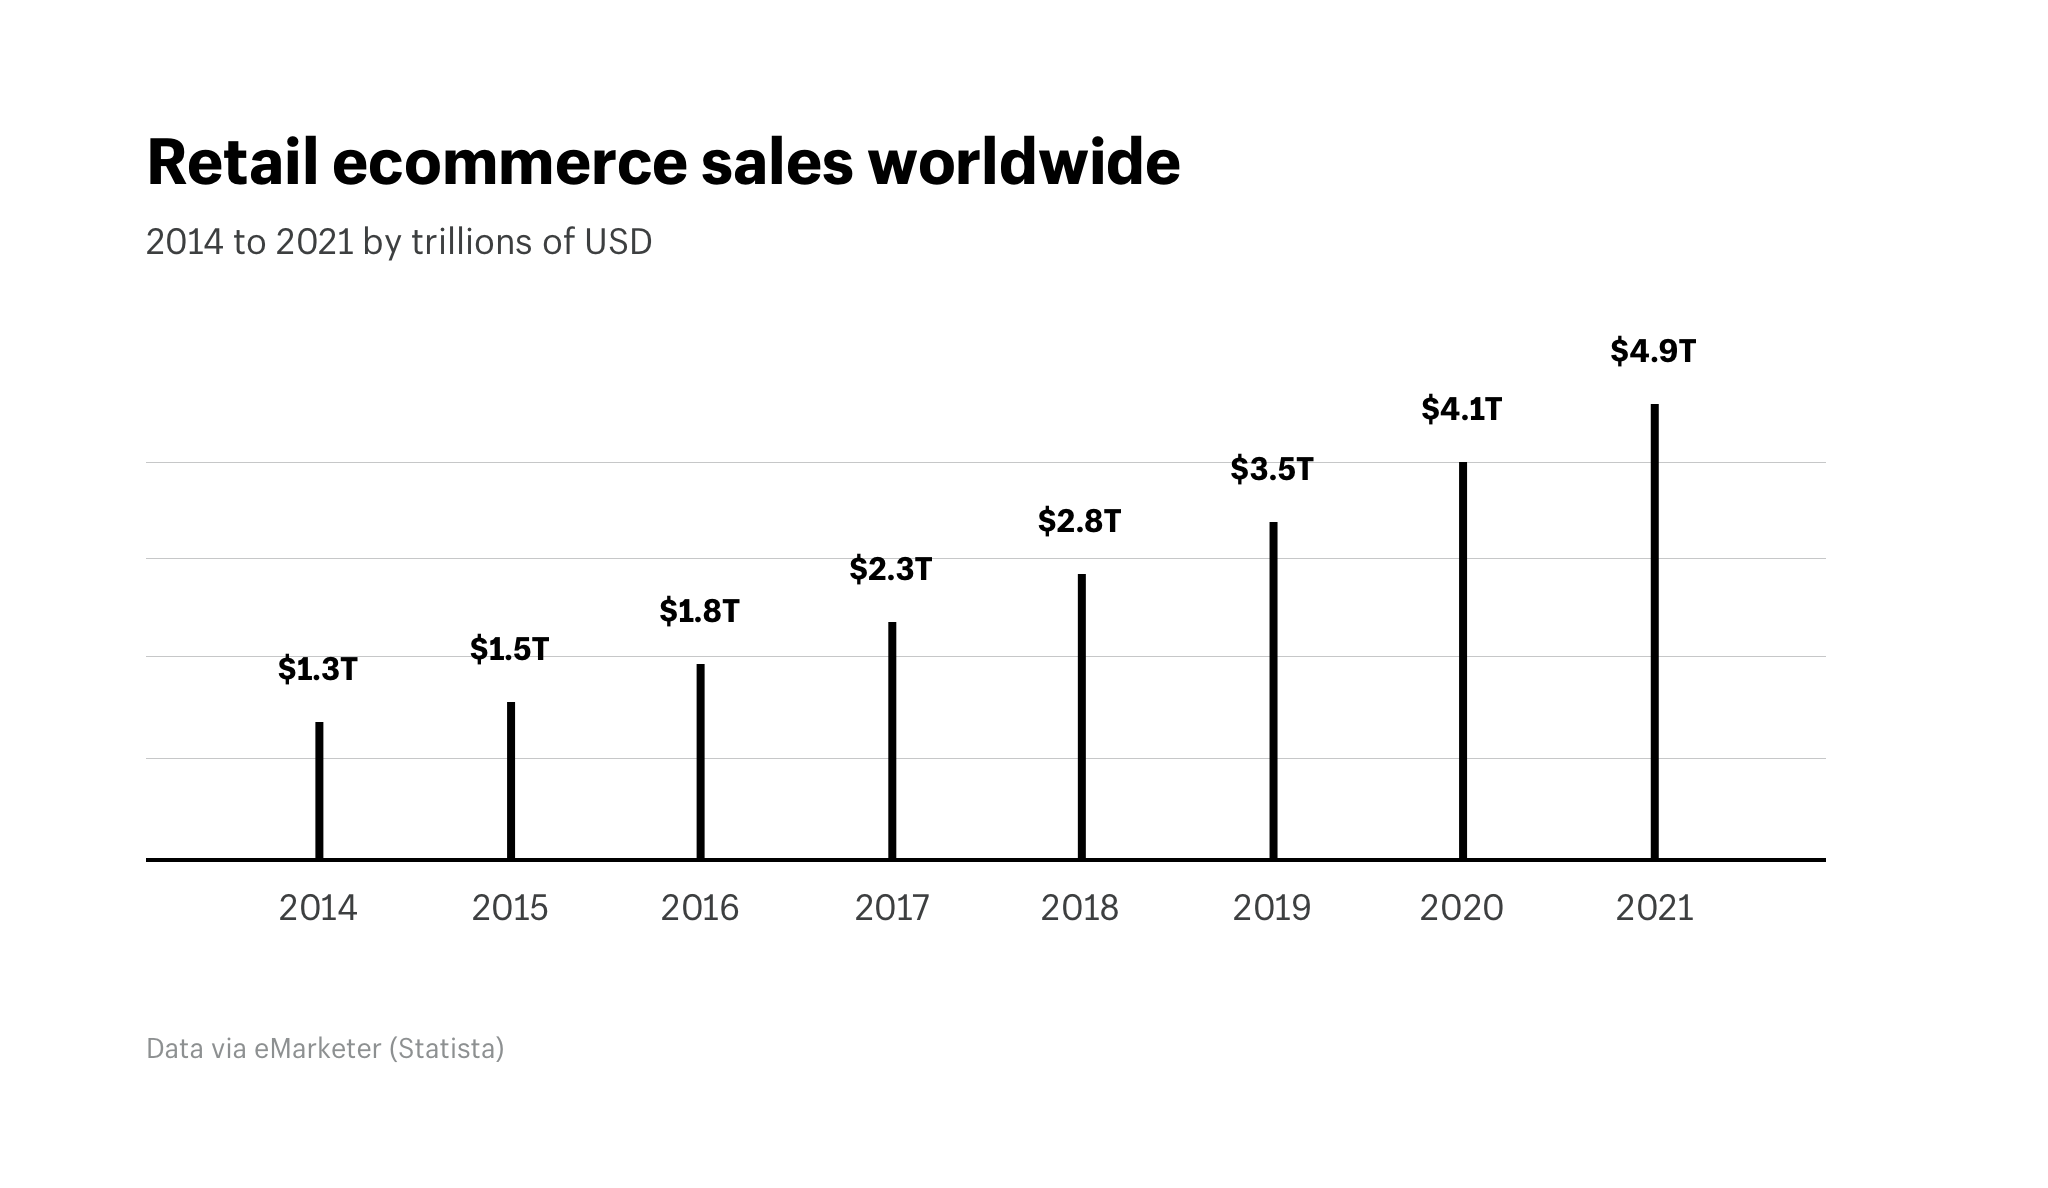 graphical report about retail e-commerce sales worldwide from 2014 to 2021